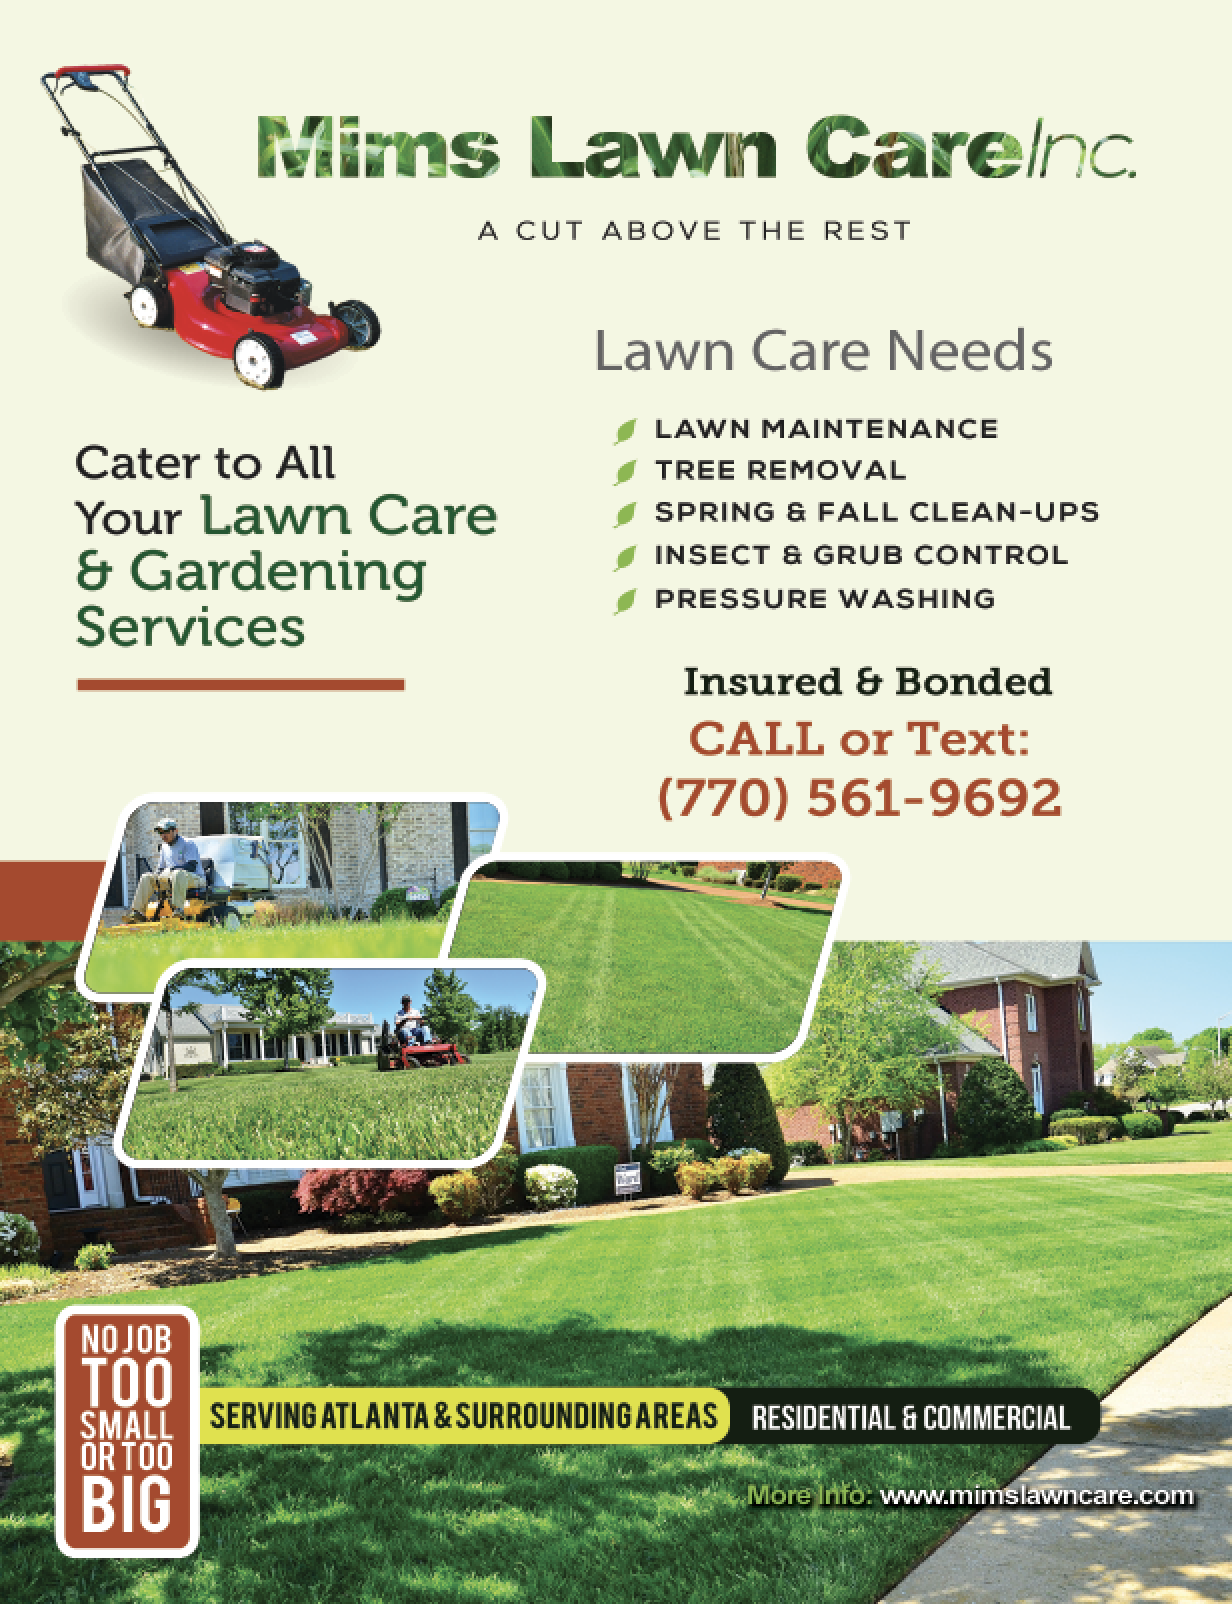 Get lawn care service in atlanta ga from mims lawn care for Lawn care companies